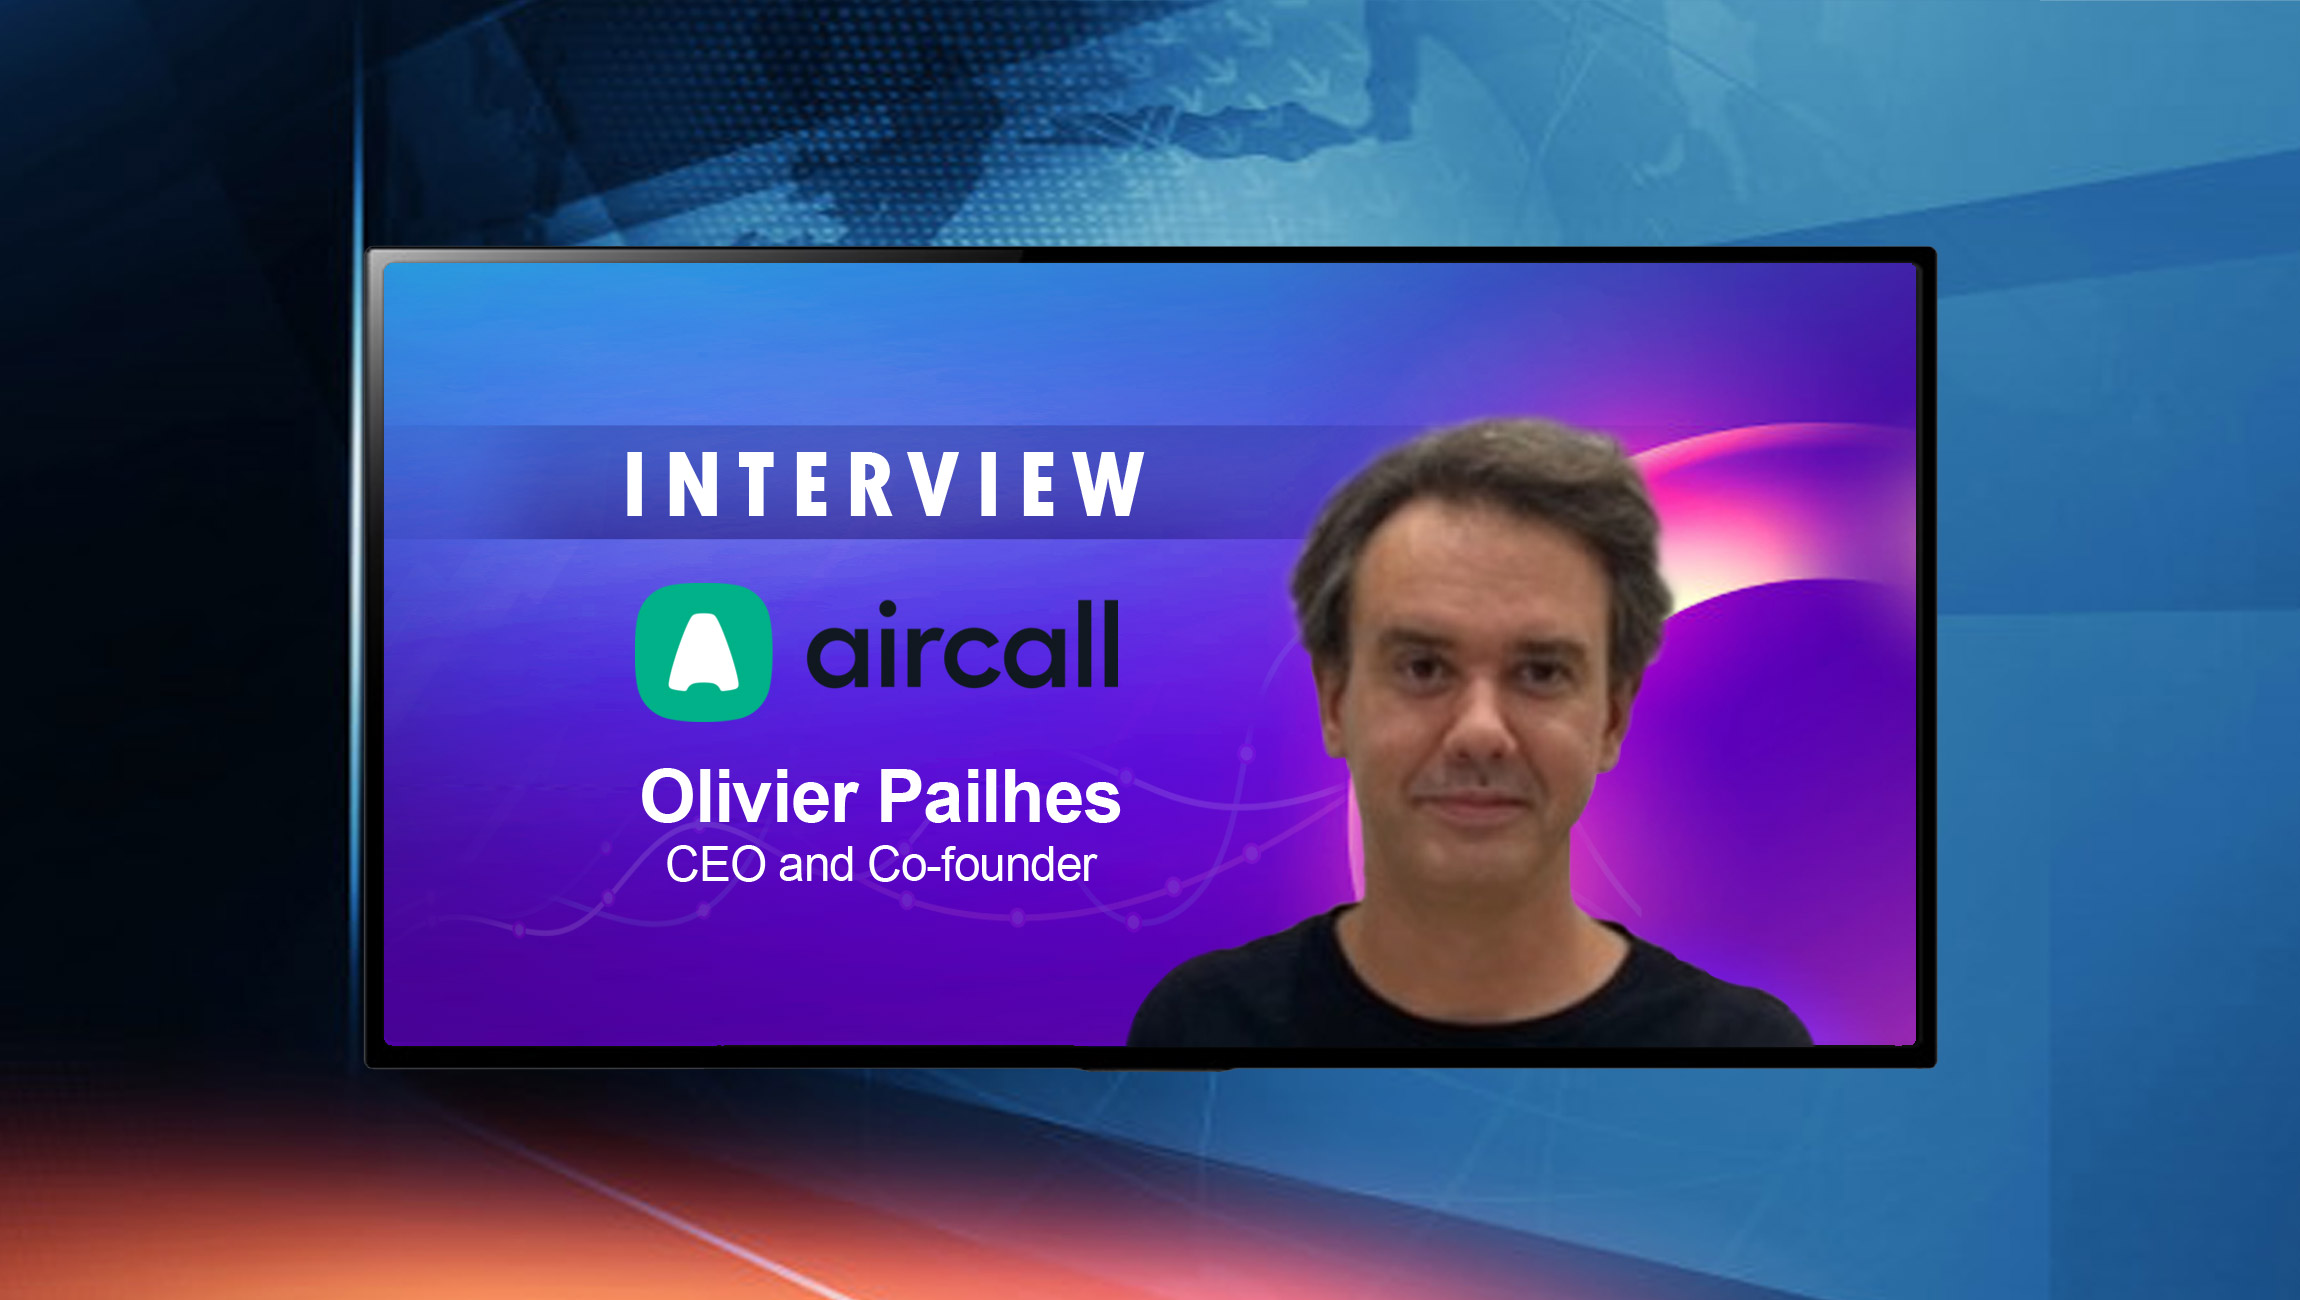 SalesTechStar Interview with Olivier Pailhes, CEO and Co-founder at Aircall